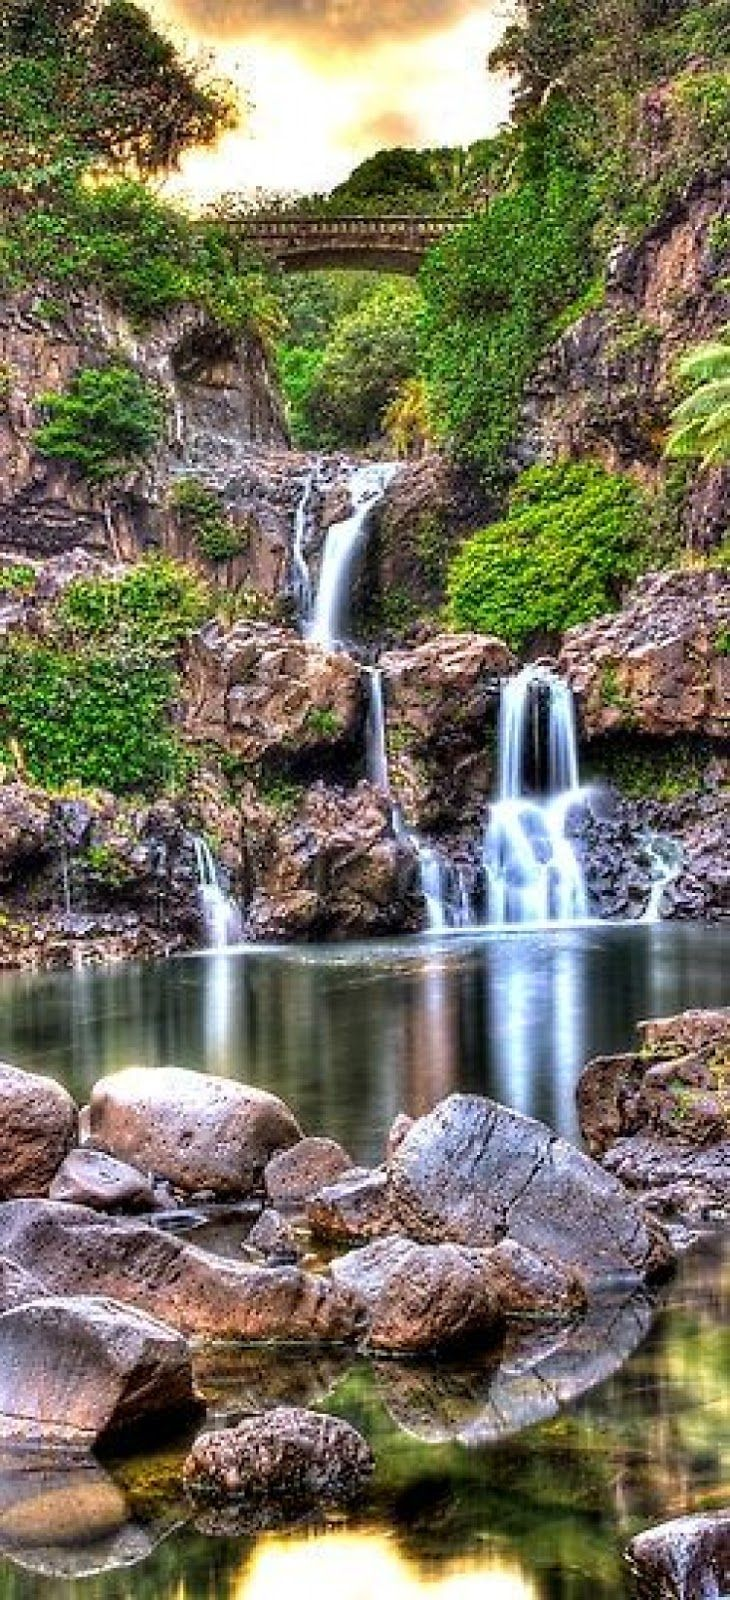 Preciosa foto de paisaje de una cascada - Beautiful landscape picture of a waterfall